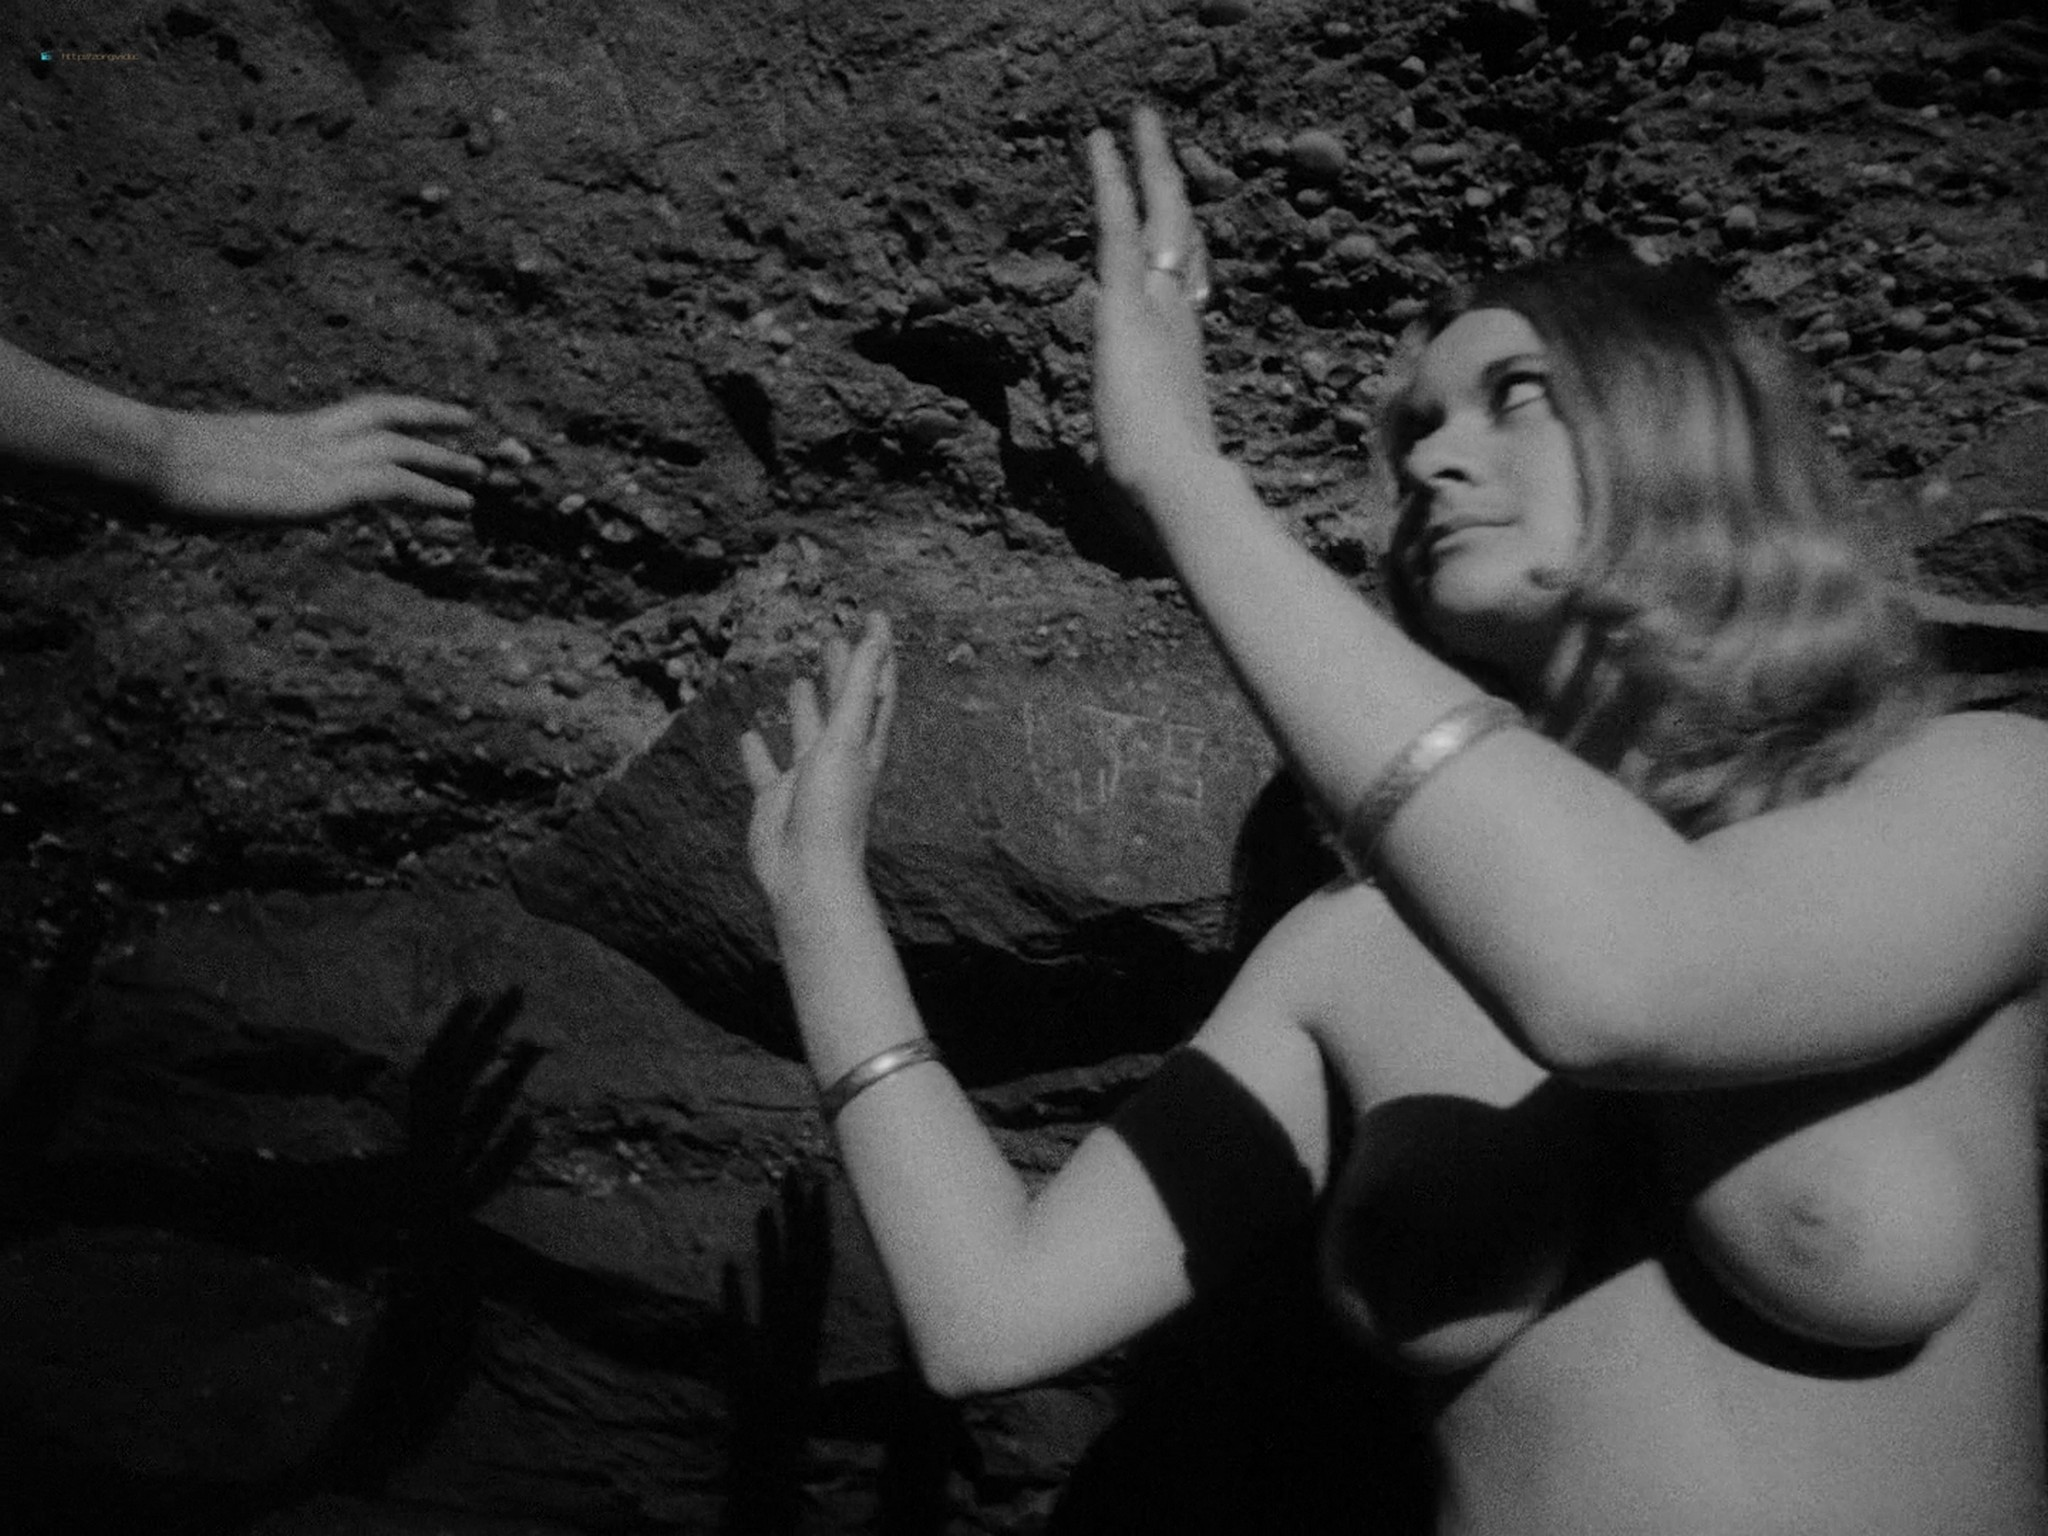 Maxine Sanders nude full frontal others nude too - Legend of the Witches (1970) HD 1080p BluRay (10)